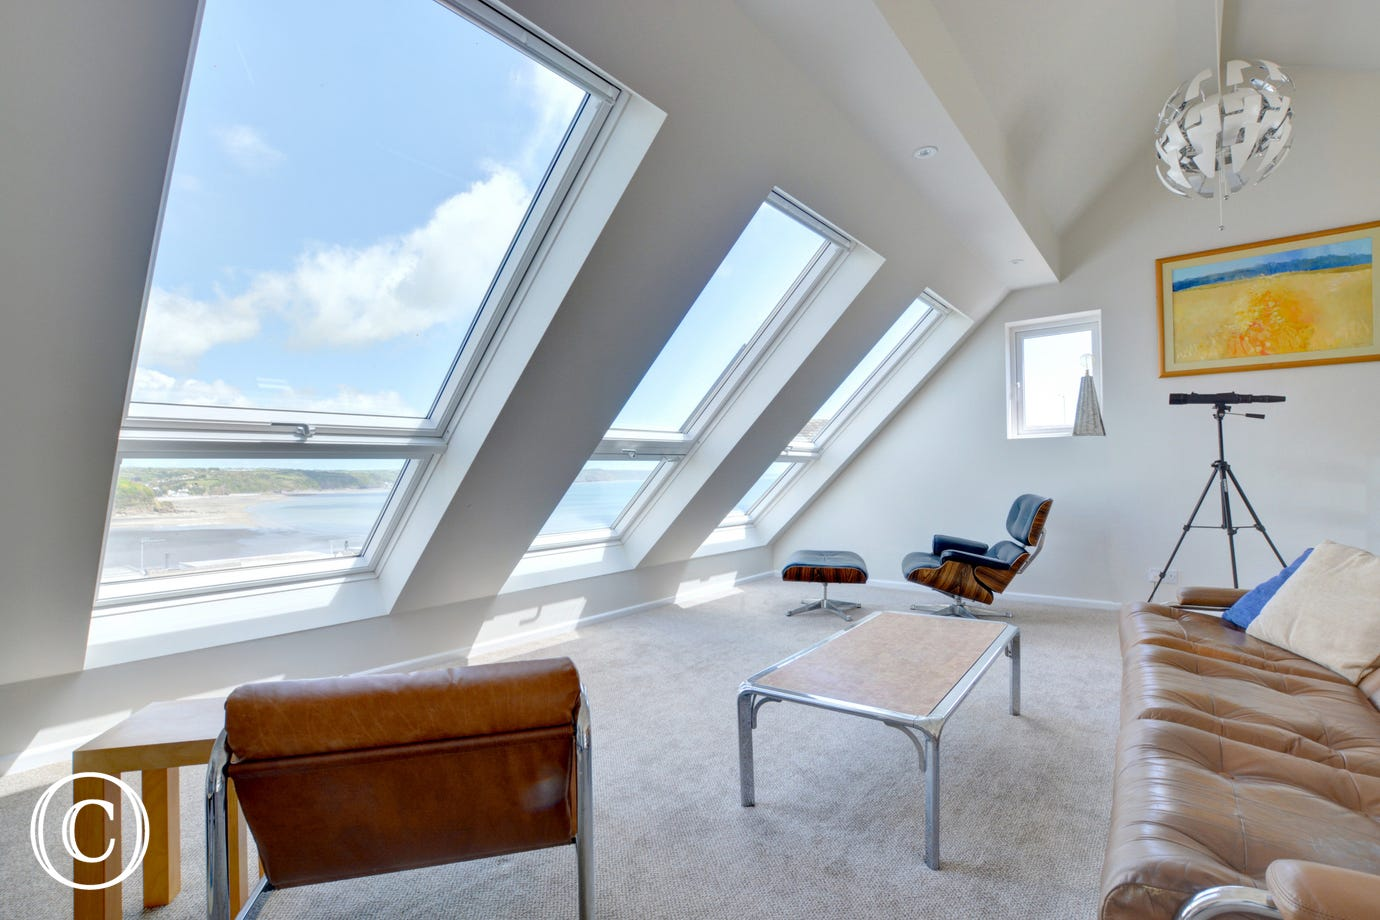 The views from the stunning new mezzanine are great at this self catering holiday property.